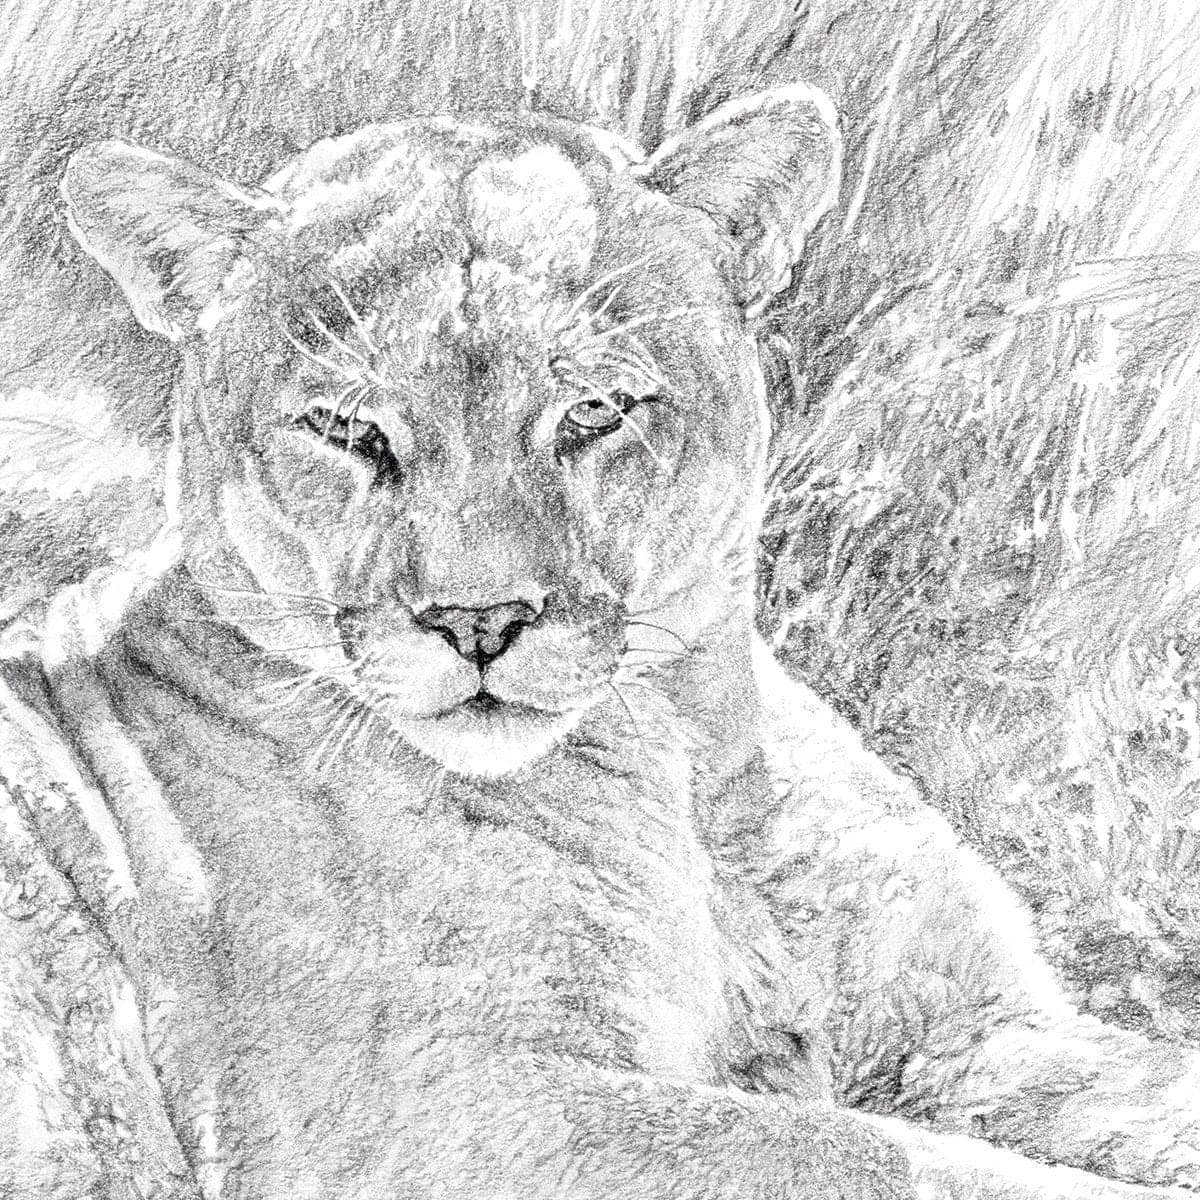 Cougar Basking - Art Print by Glen Loates from the Glen Loates Store